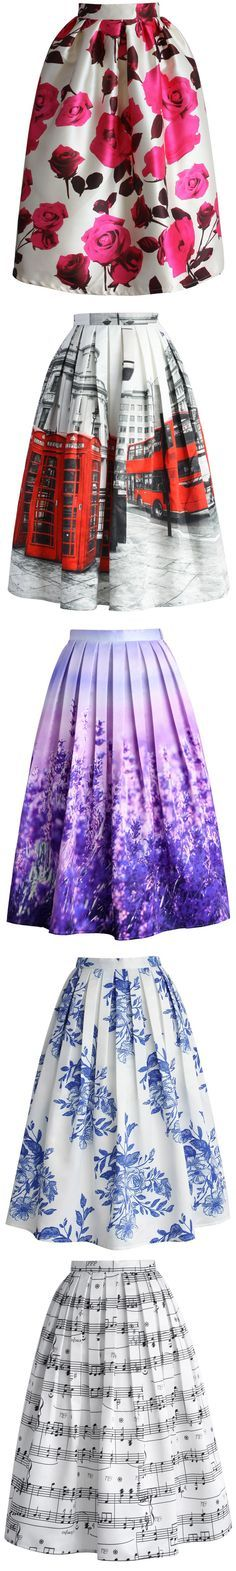 floral skirt, scenic print midi skirt collection